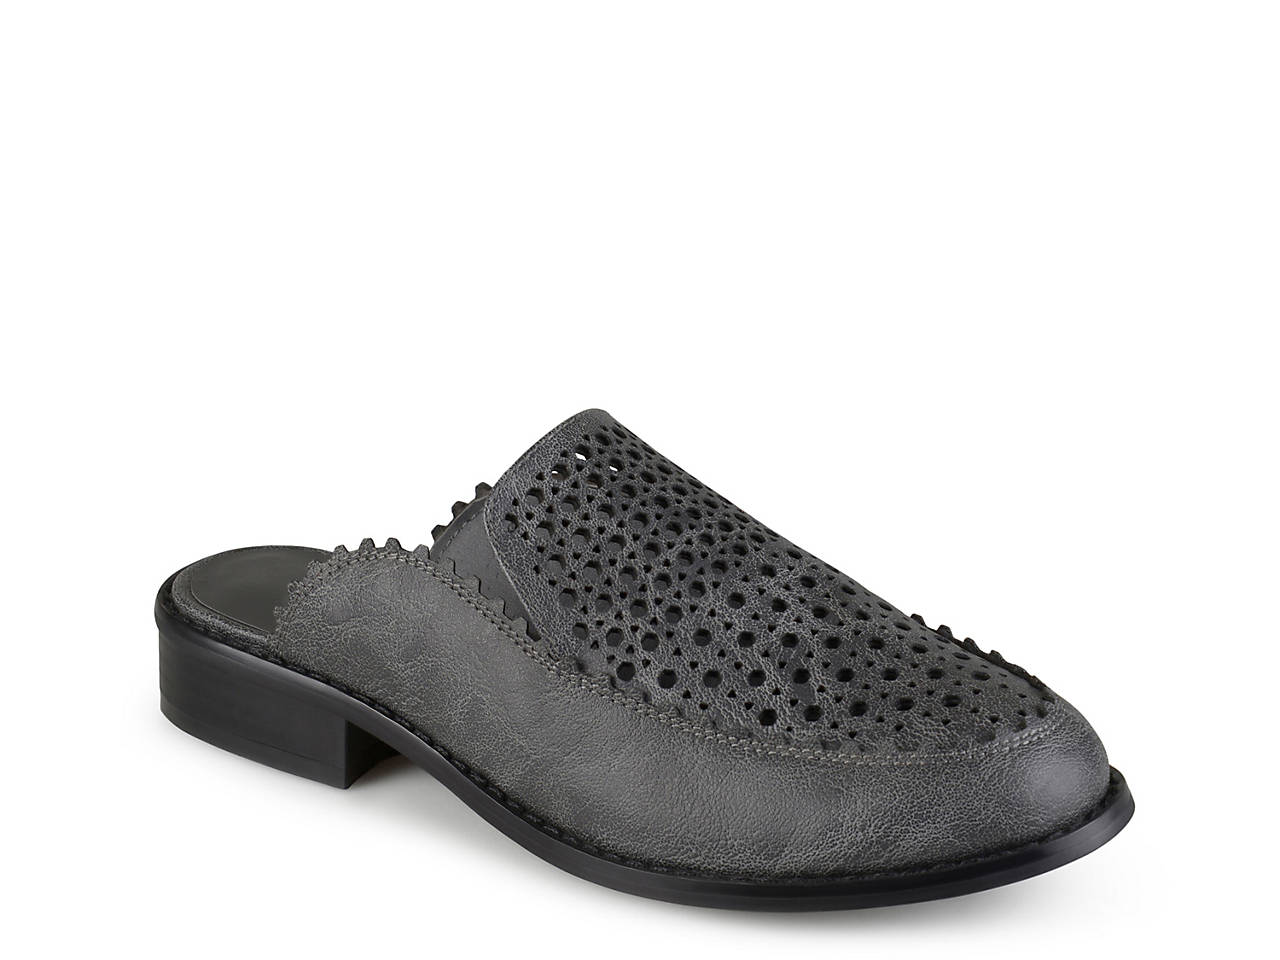 41e8258743f1 Journee Collection Akeela Mule Women s Shoes